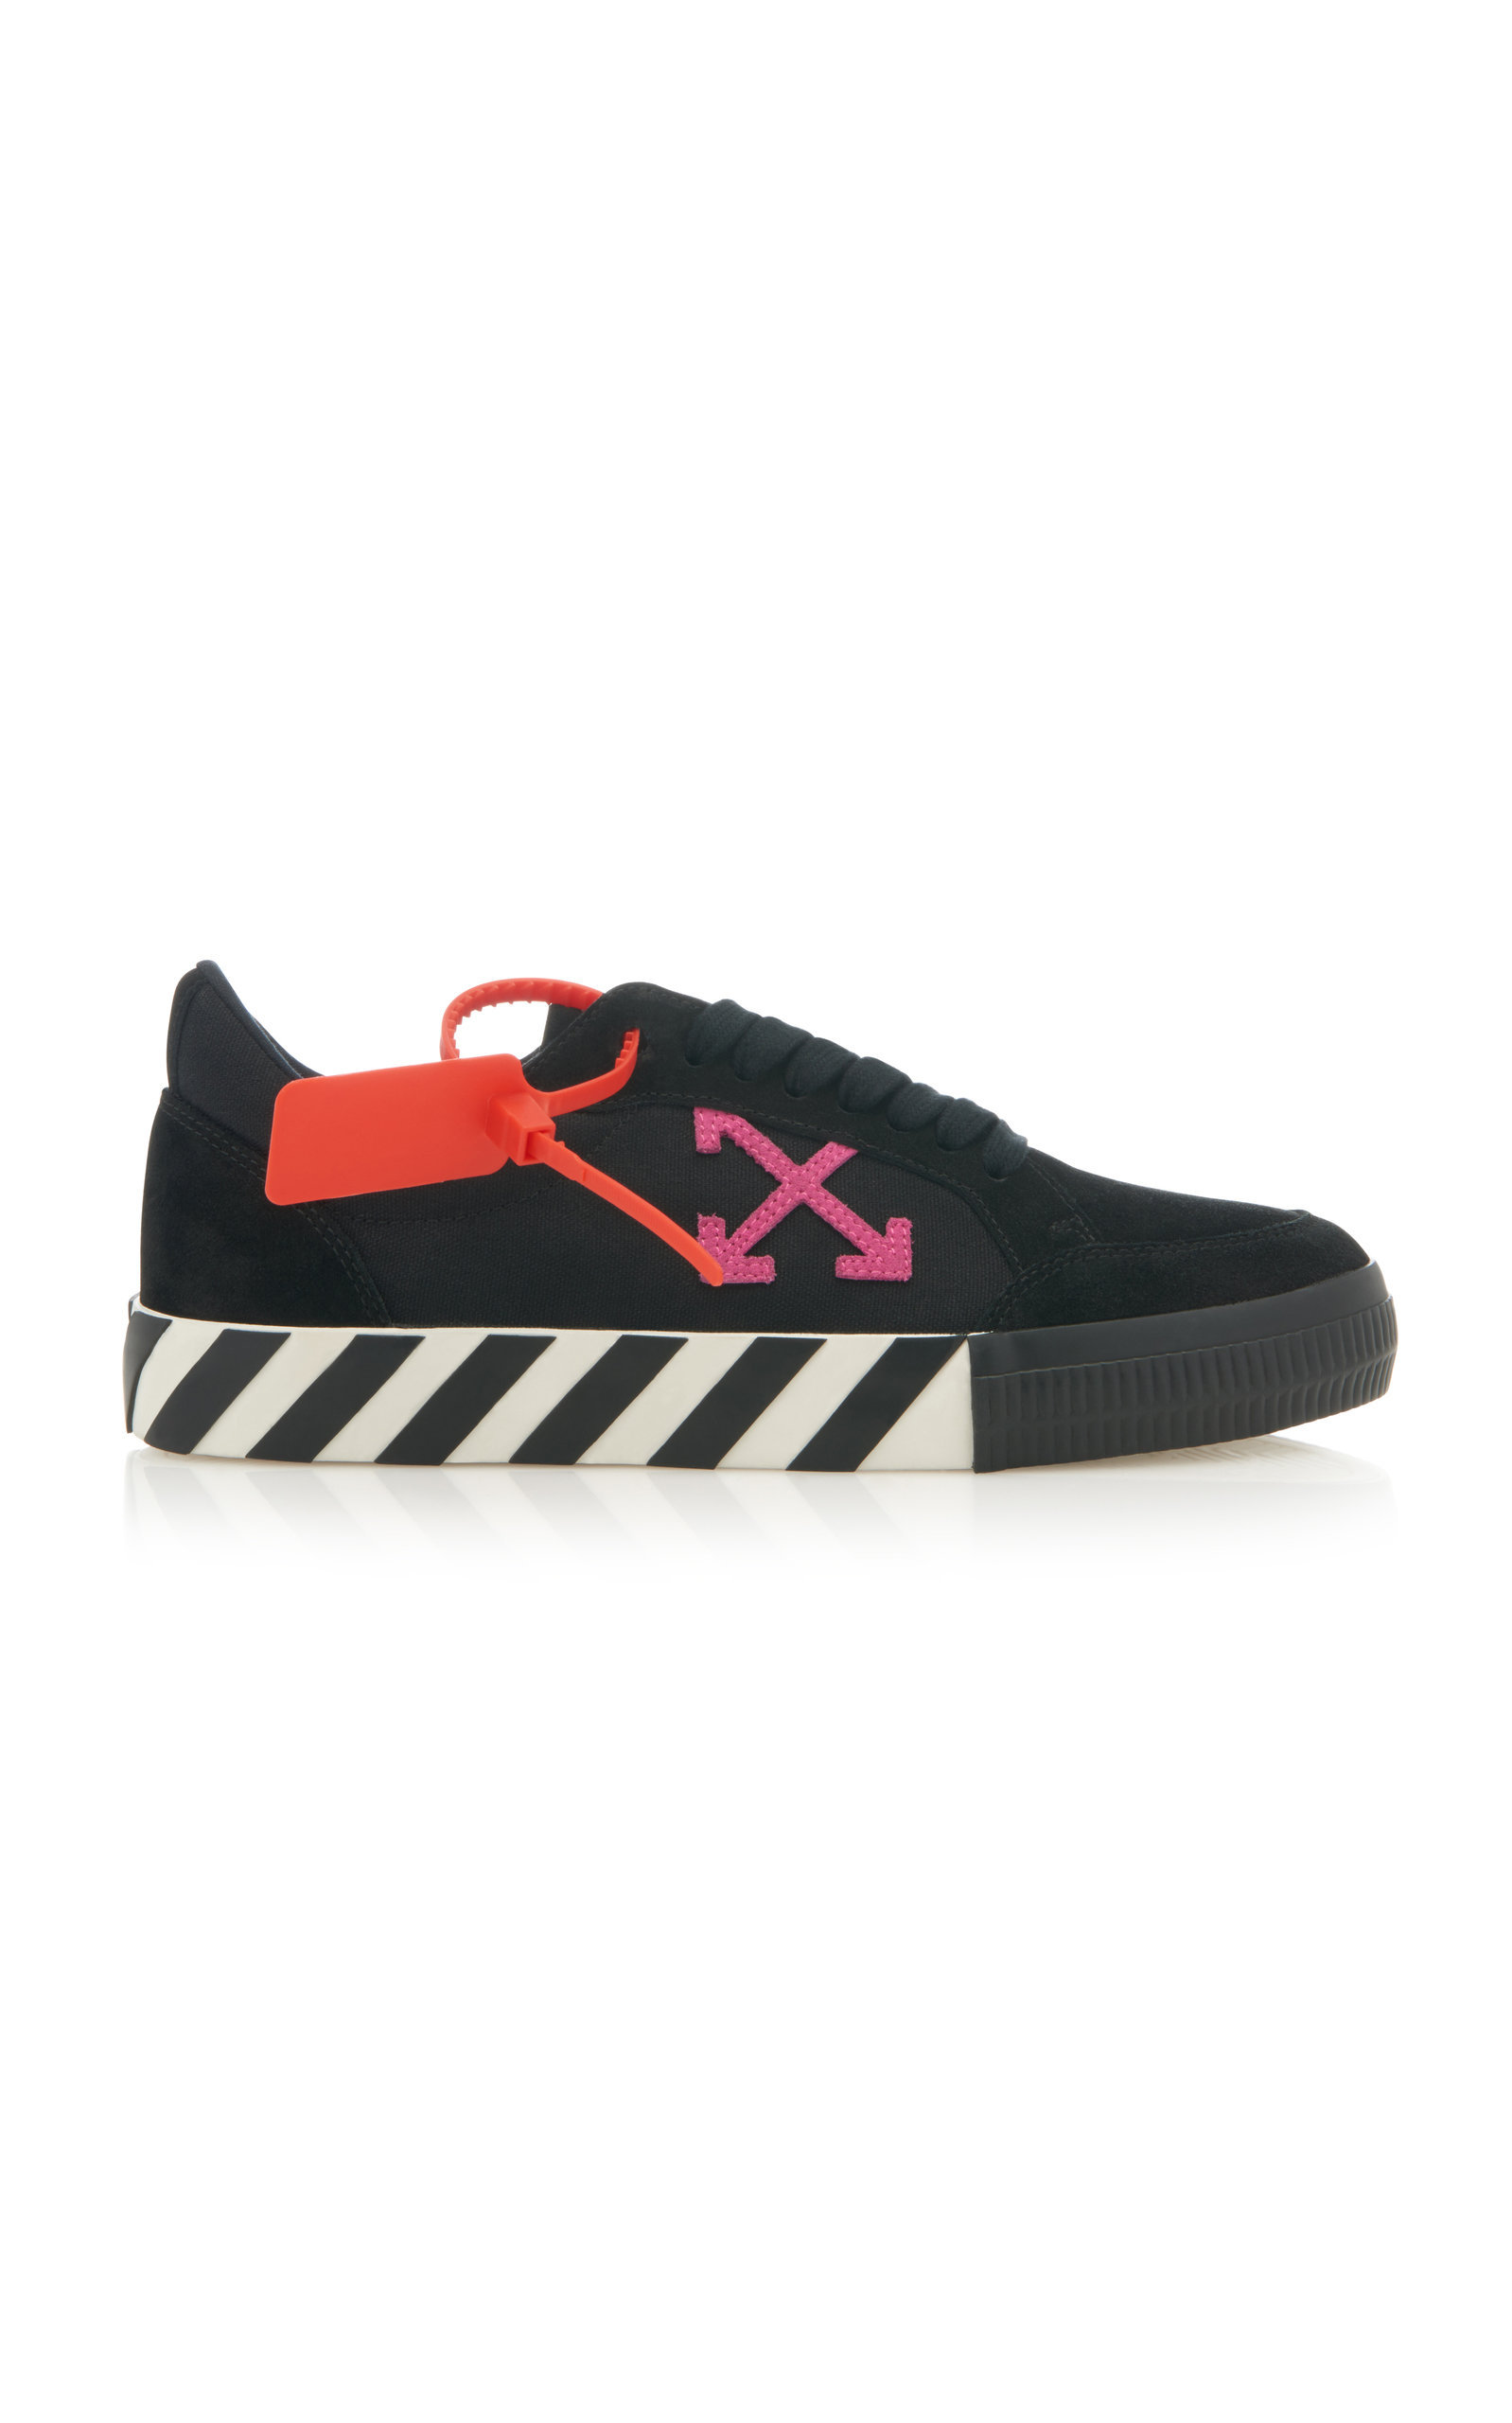 TOP SNEAKERS. #off-white #shoes